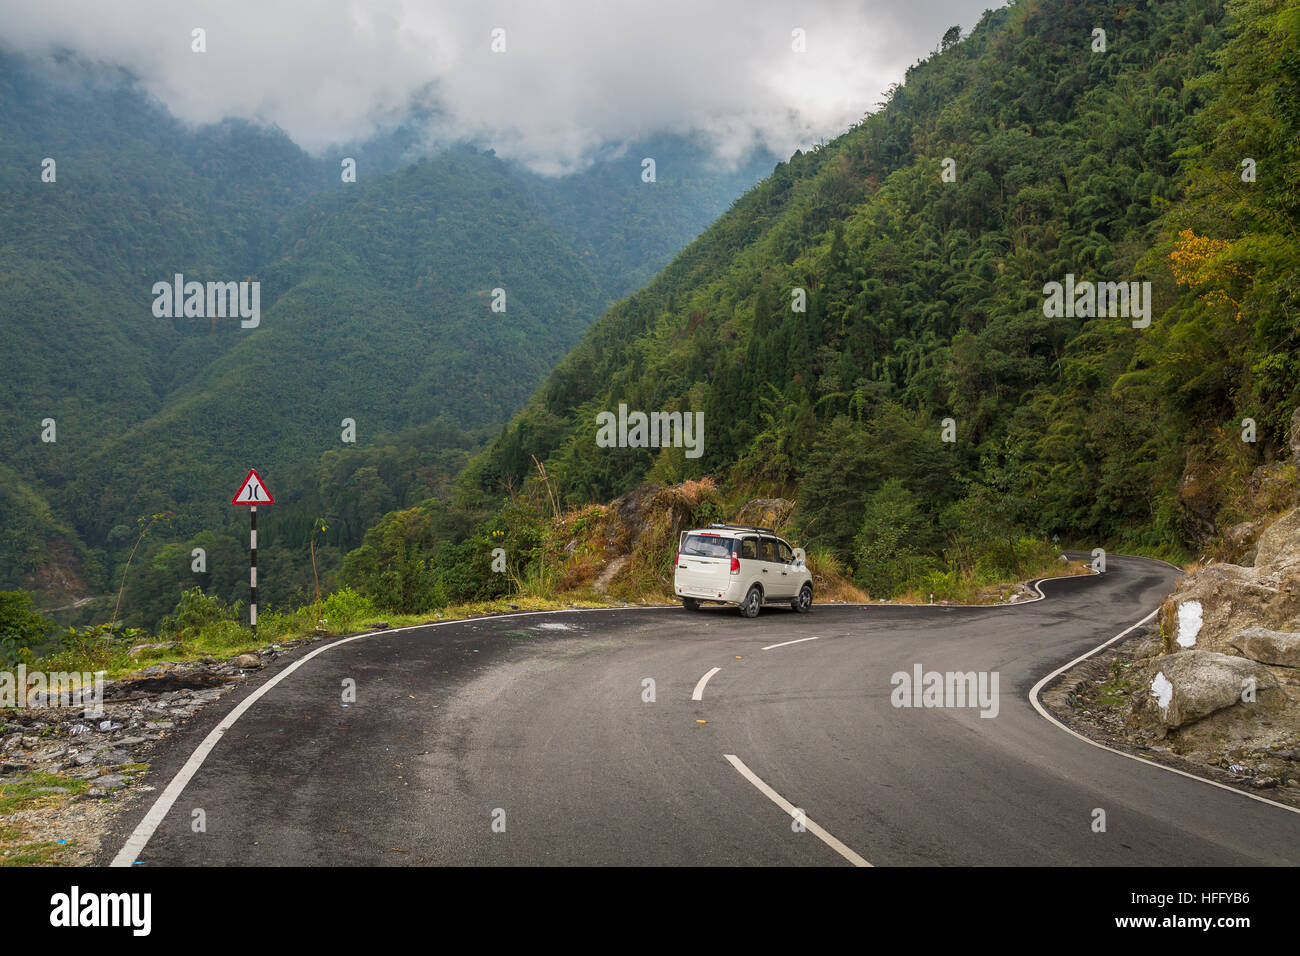 Foggy Himalayan mountain road from Gangtok to Chungthang, North Sikkim, India. - Stock Image